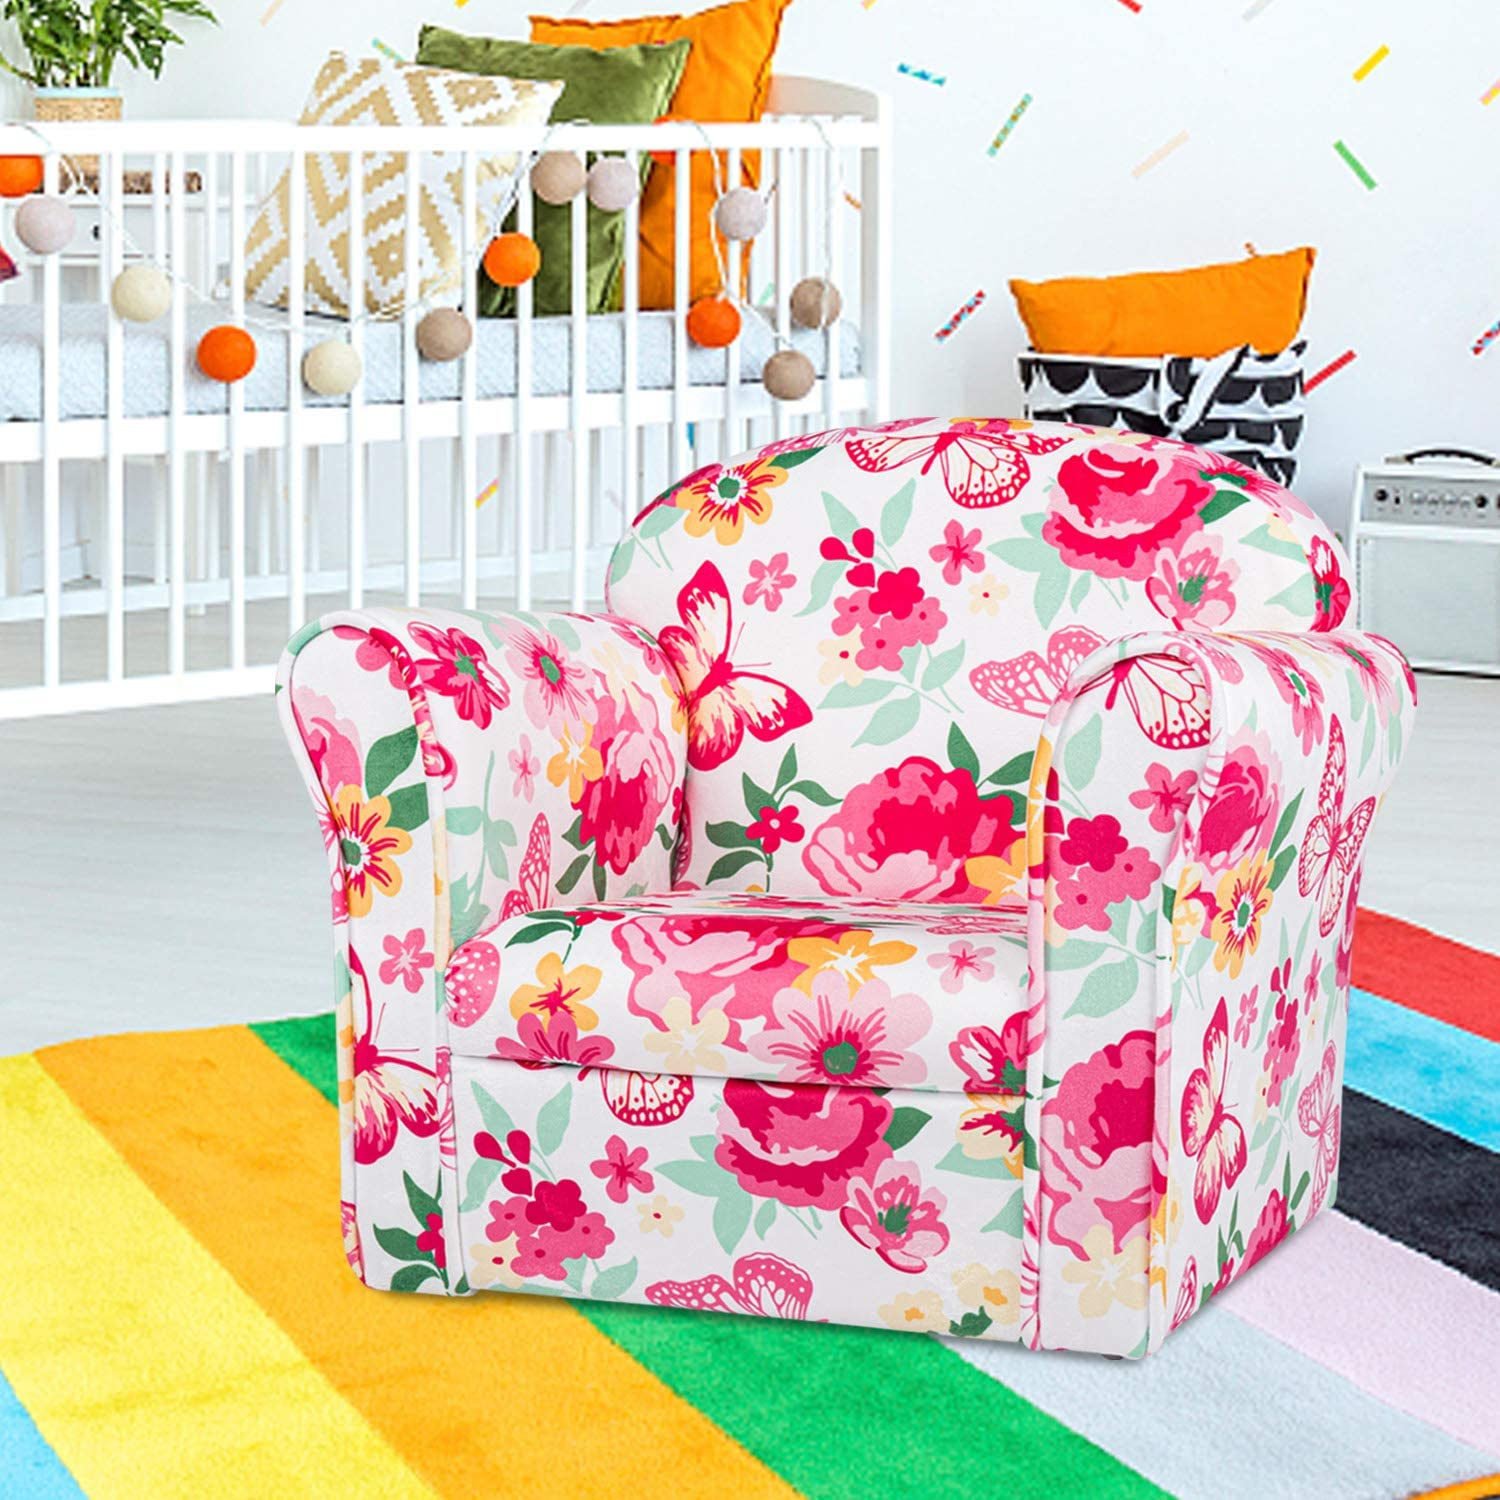 Kinbor Baby Child/'s Armchair Butterfly Kid/'s Cartoon Sofa w//Wooden Frame Fabric Cover Toddler Furniture Roundy Armrest Chair